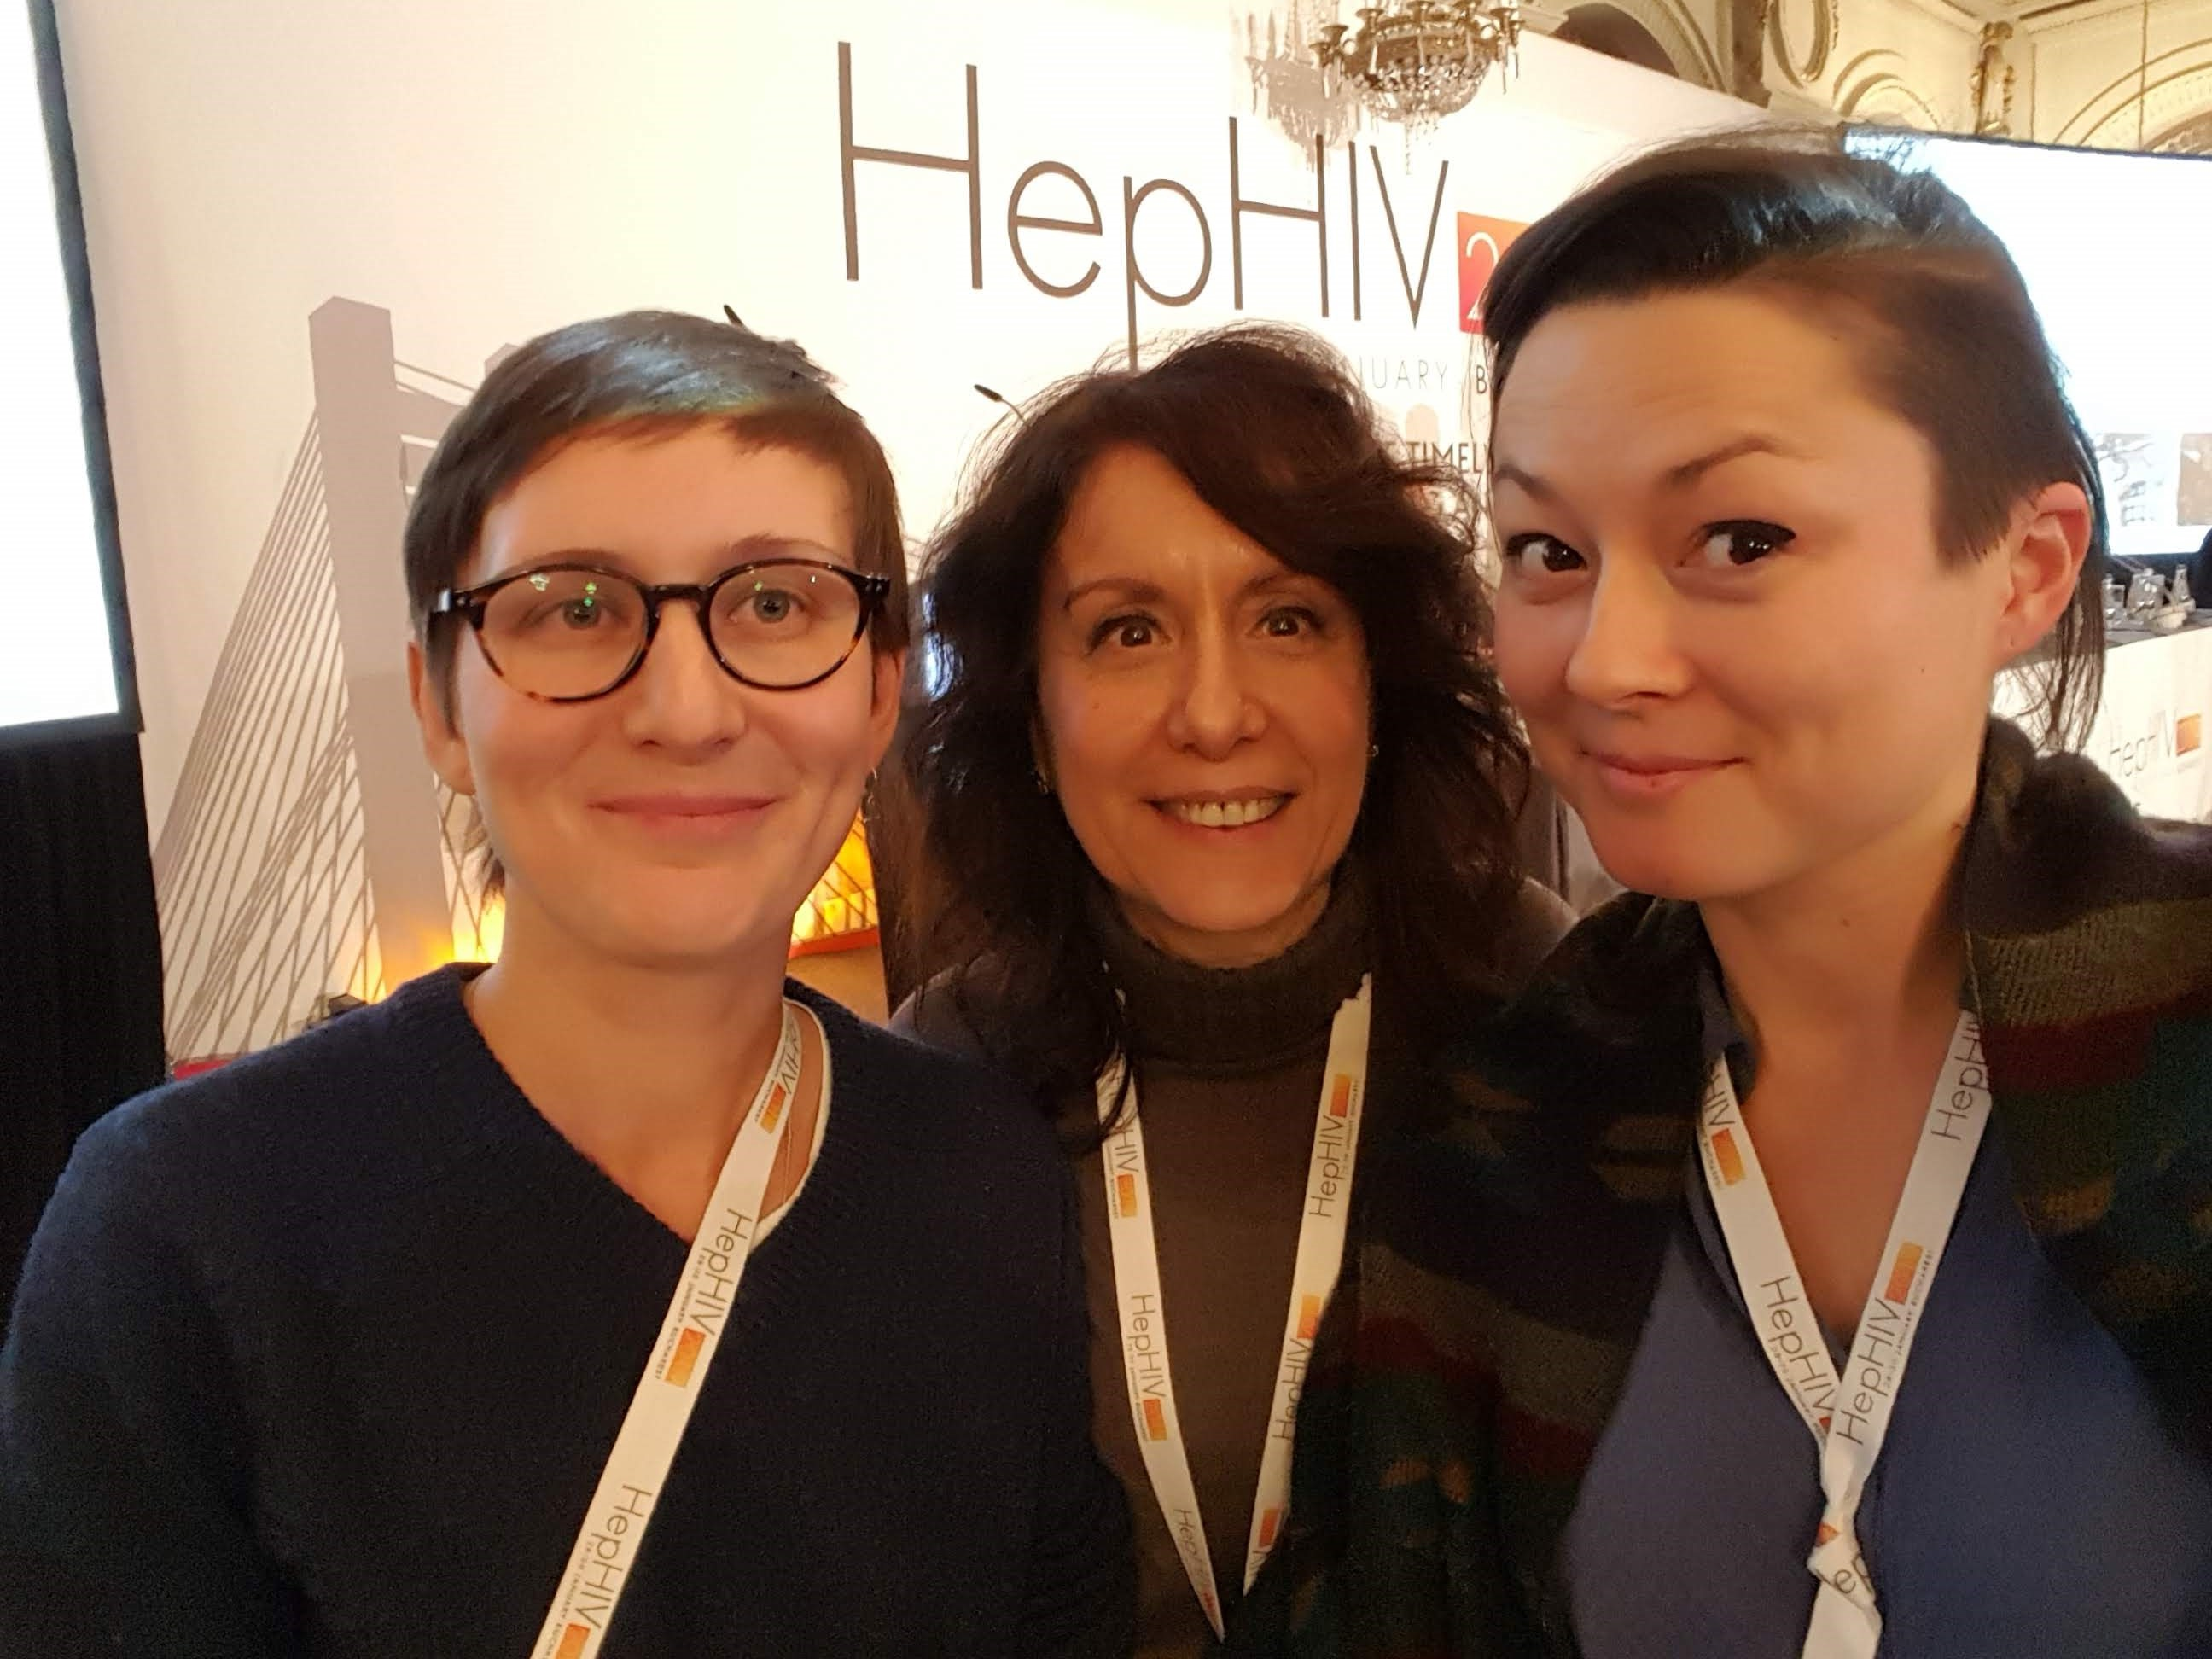 Sasha Gurinova (HA-REACT, DAH, Germany), Lella Cosmaro (INTEGRATE, LILA Milano) and Ljuba Boettger (HA-REACT, AAE) at HepHIV 2019